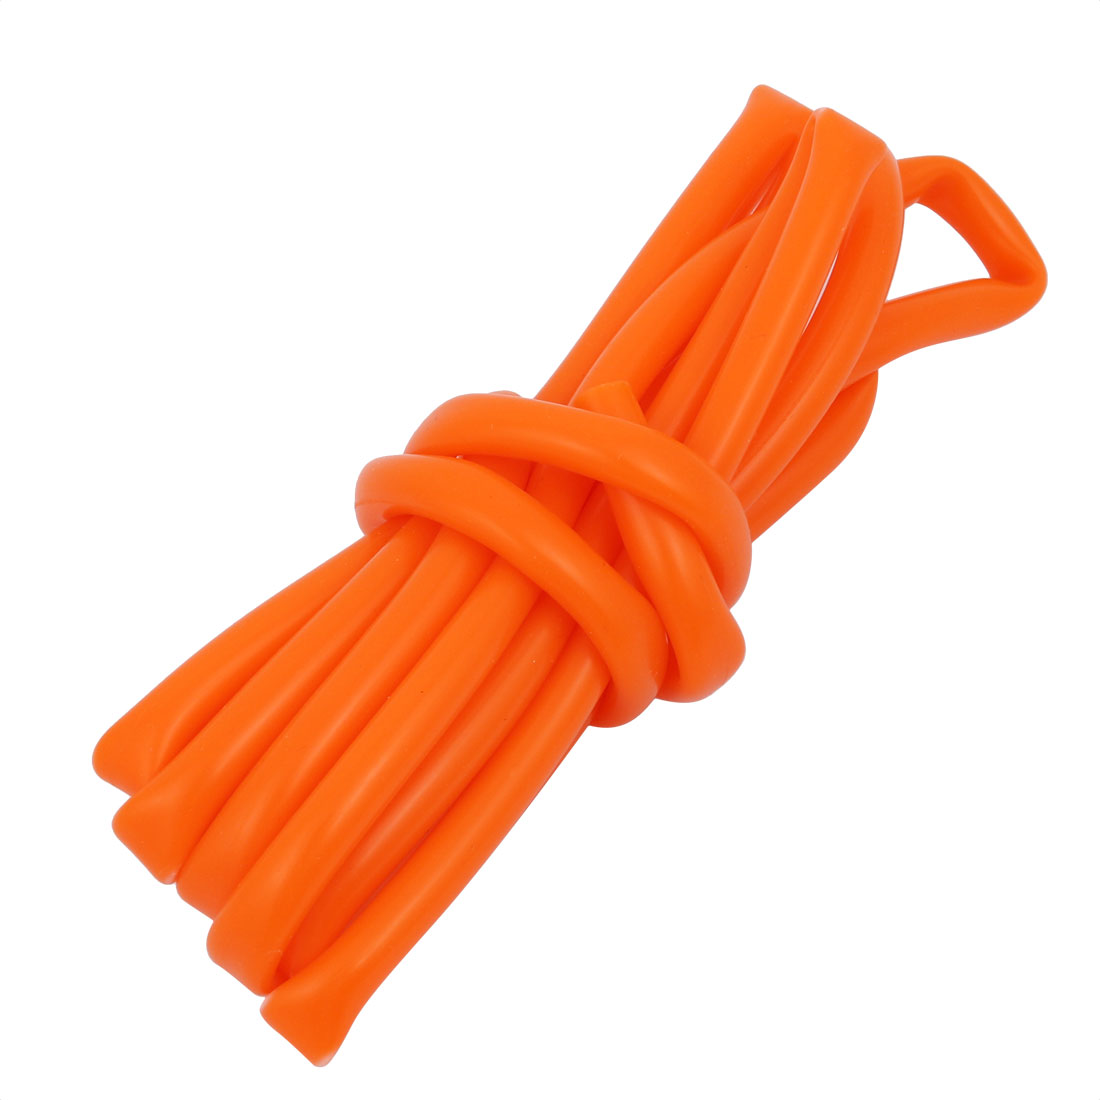 5mm x 7mm Dia High Temp Resistant Silicone Tube Hose Rubber Pipe Orange 2M Long